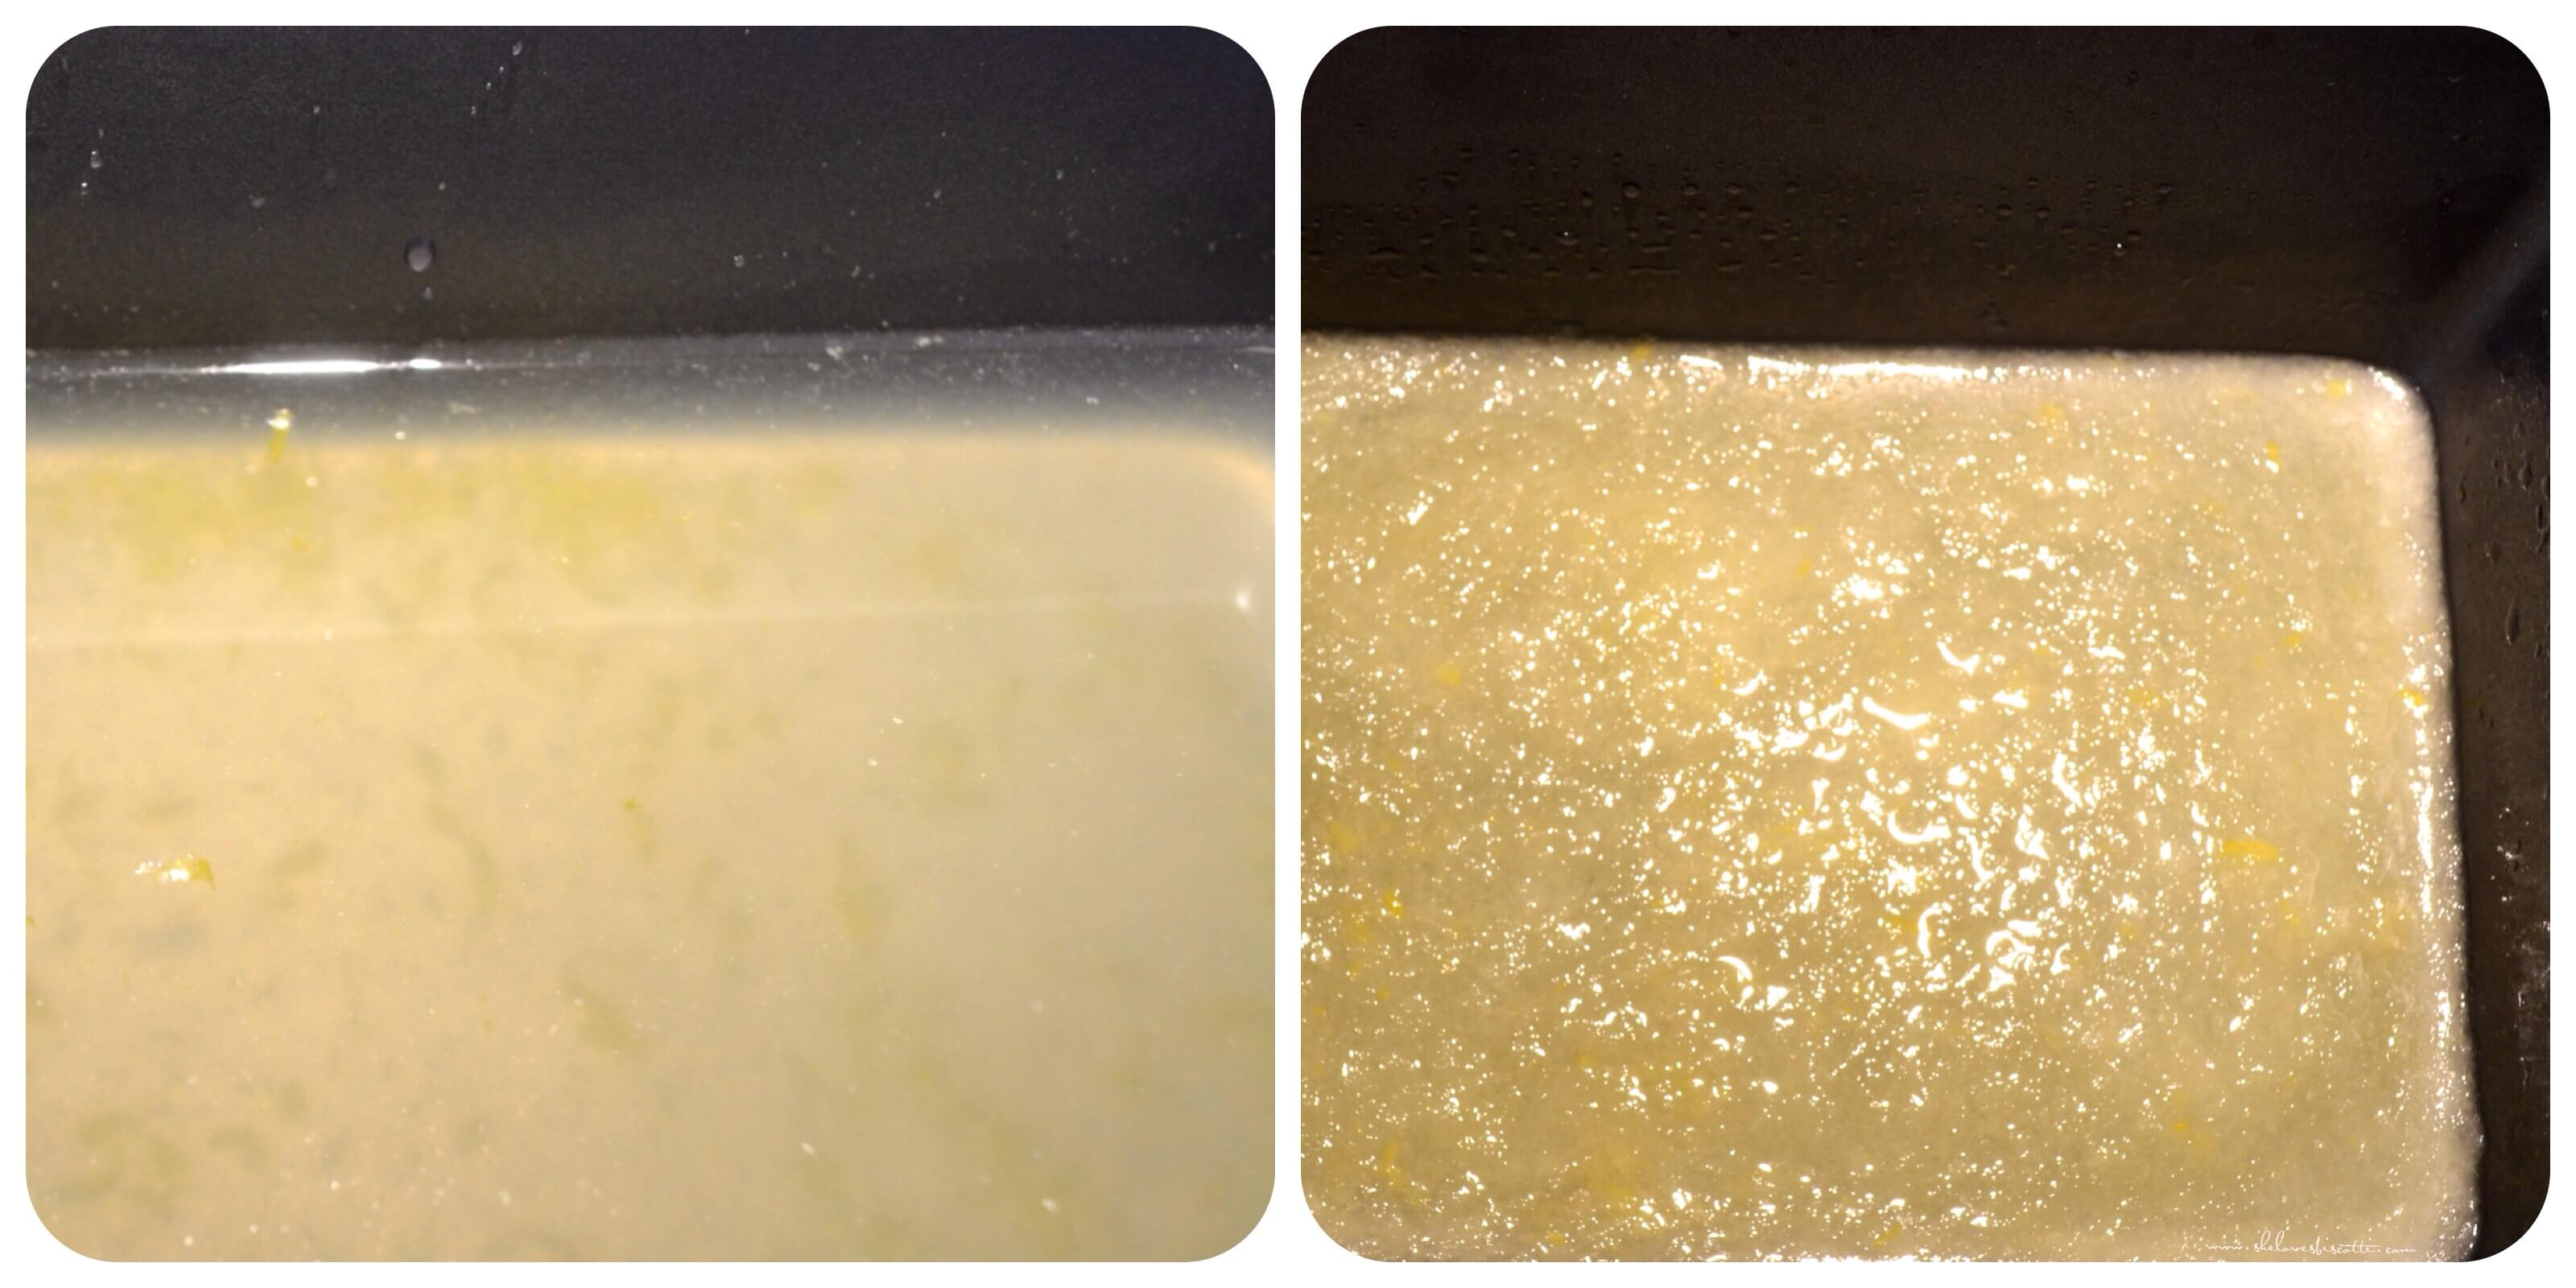 The formation of ice crystals for the lemon ice.